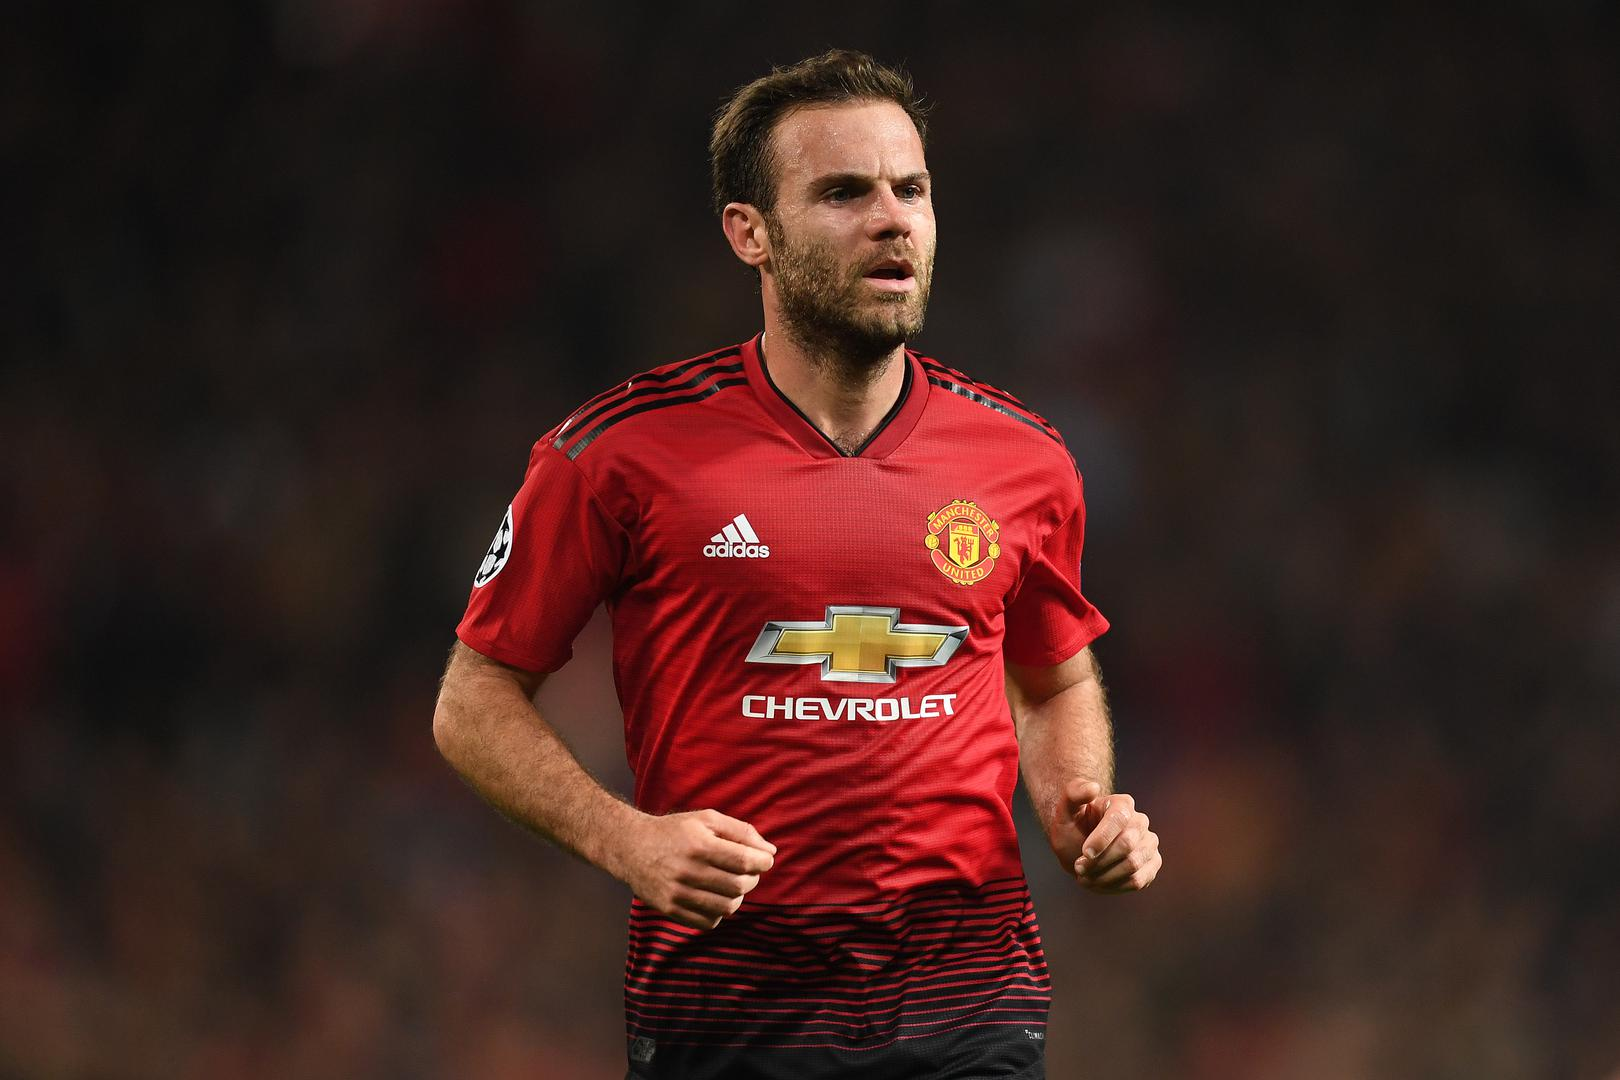 Juan Mata in action for Manchester United in the ,2018/19 season.